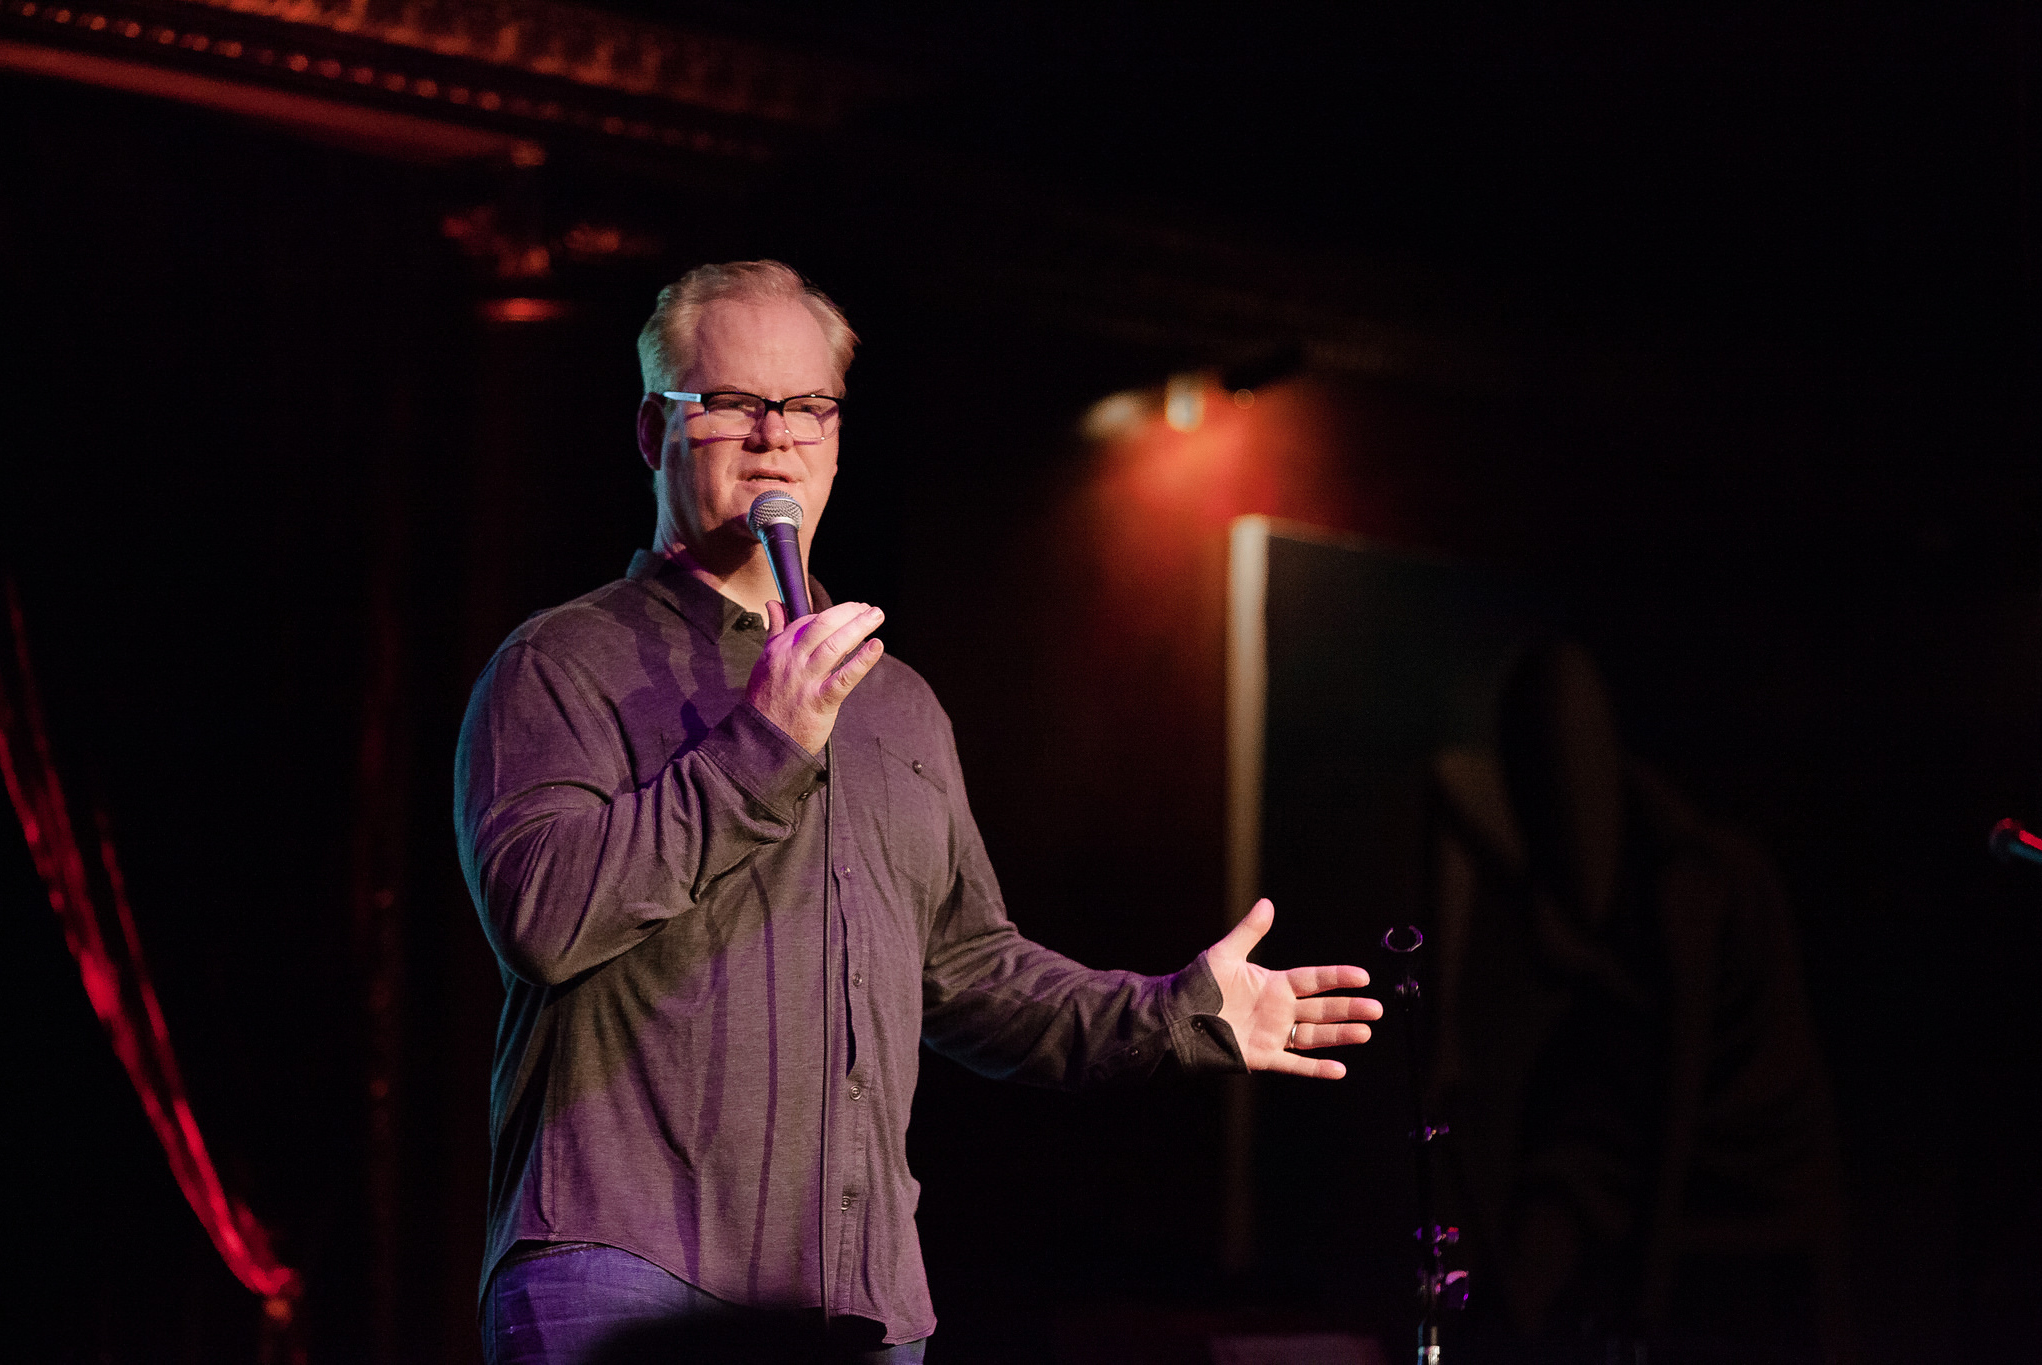 """Comedian Jim Gaffigan, hailed by the Wall Street Journal as """"the king of clean comedy,"""" will perform at the Jorgensen Center for the Performing Arts on Oct. 3, 2015.(Rainforest Action Network/Flickr)"""